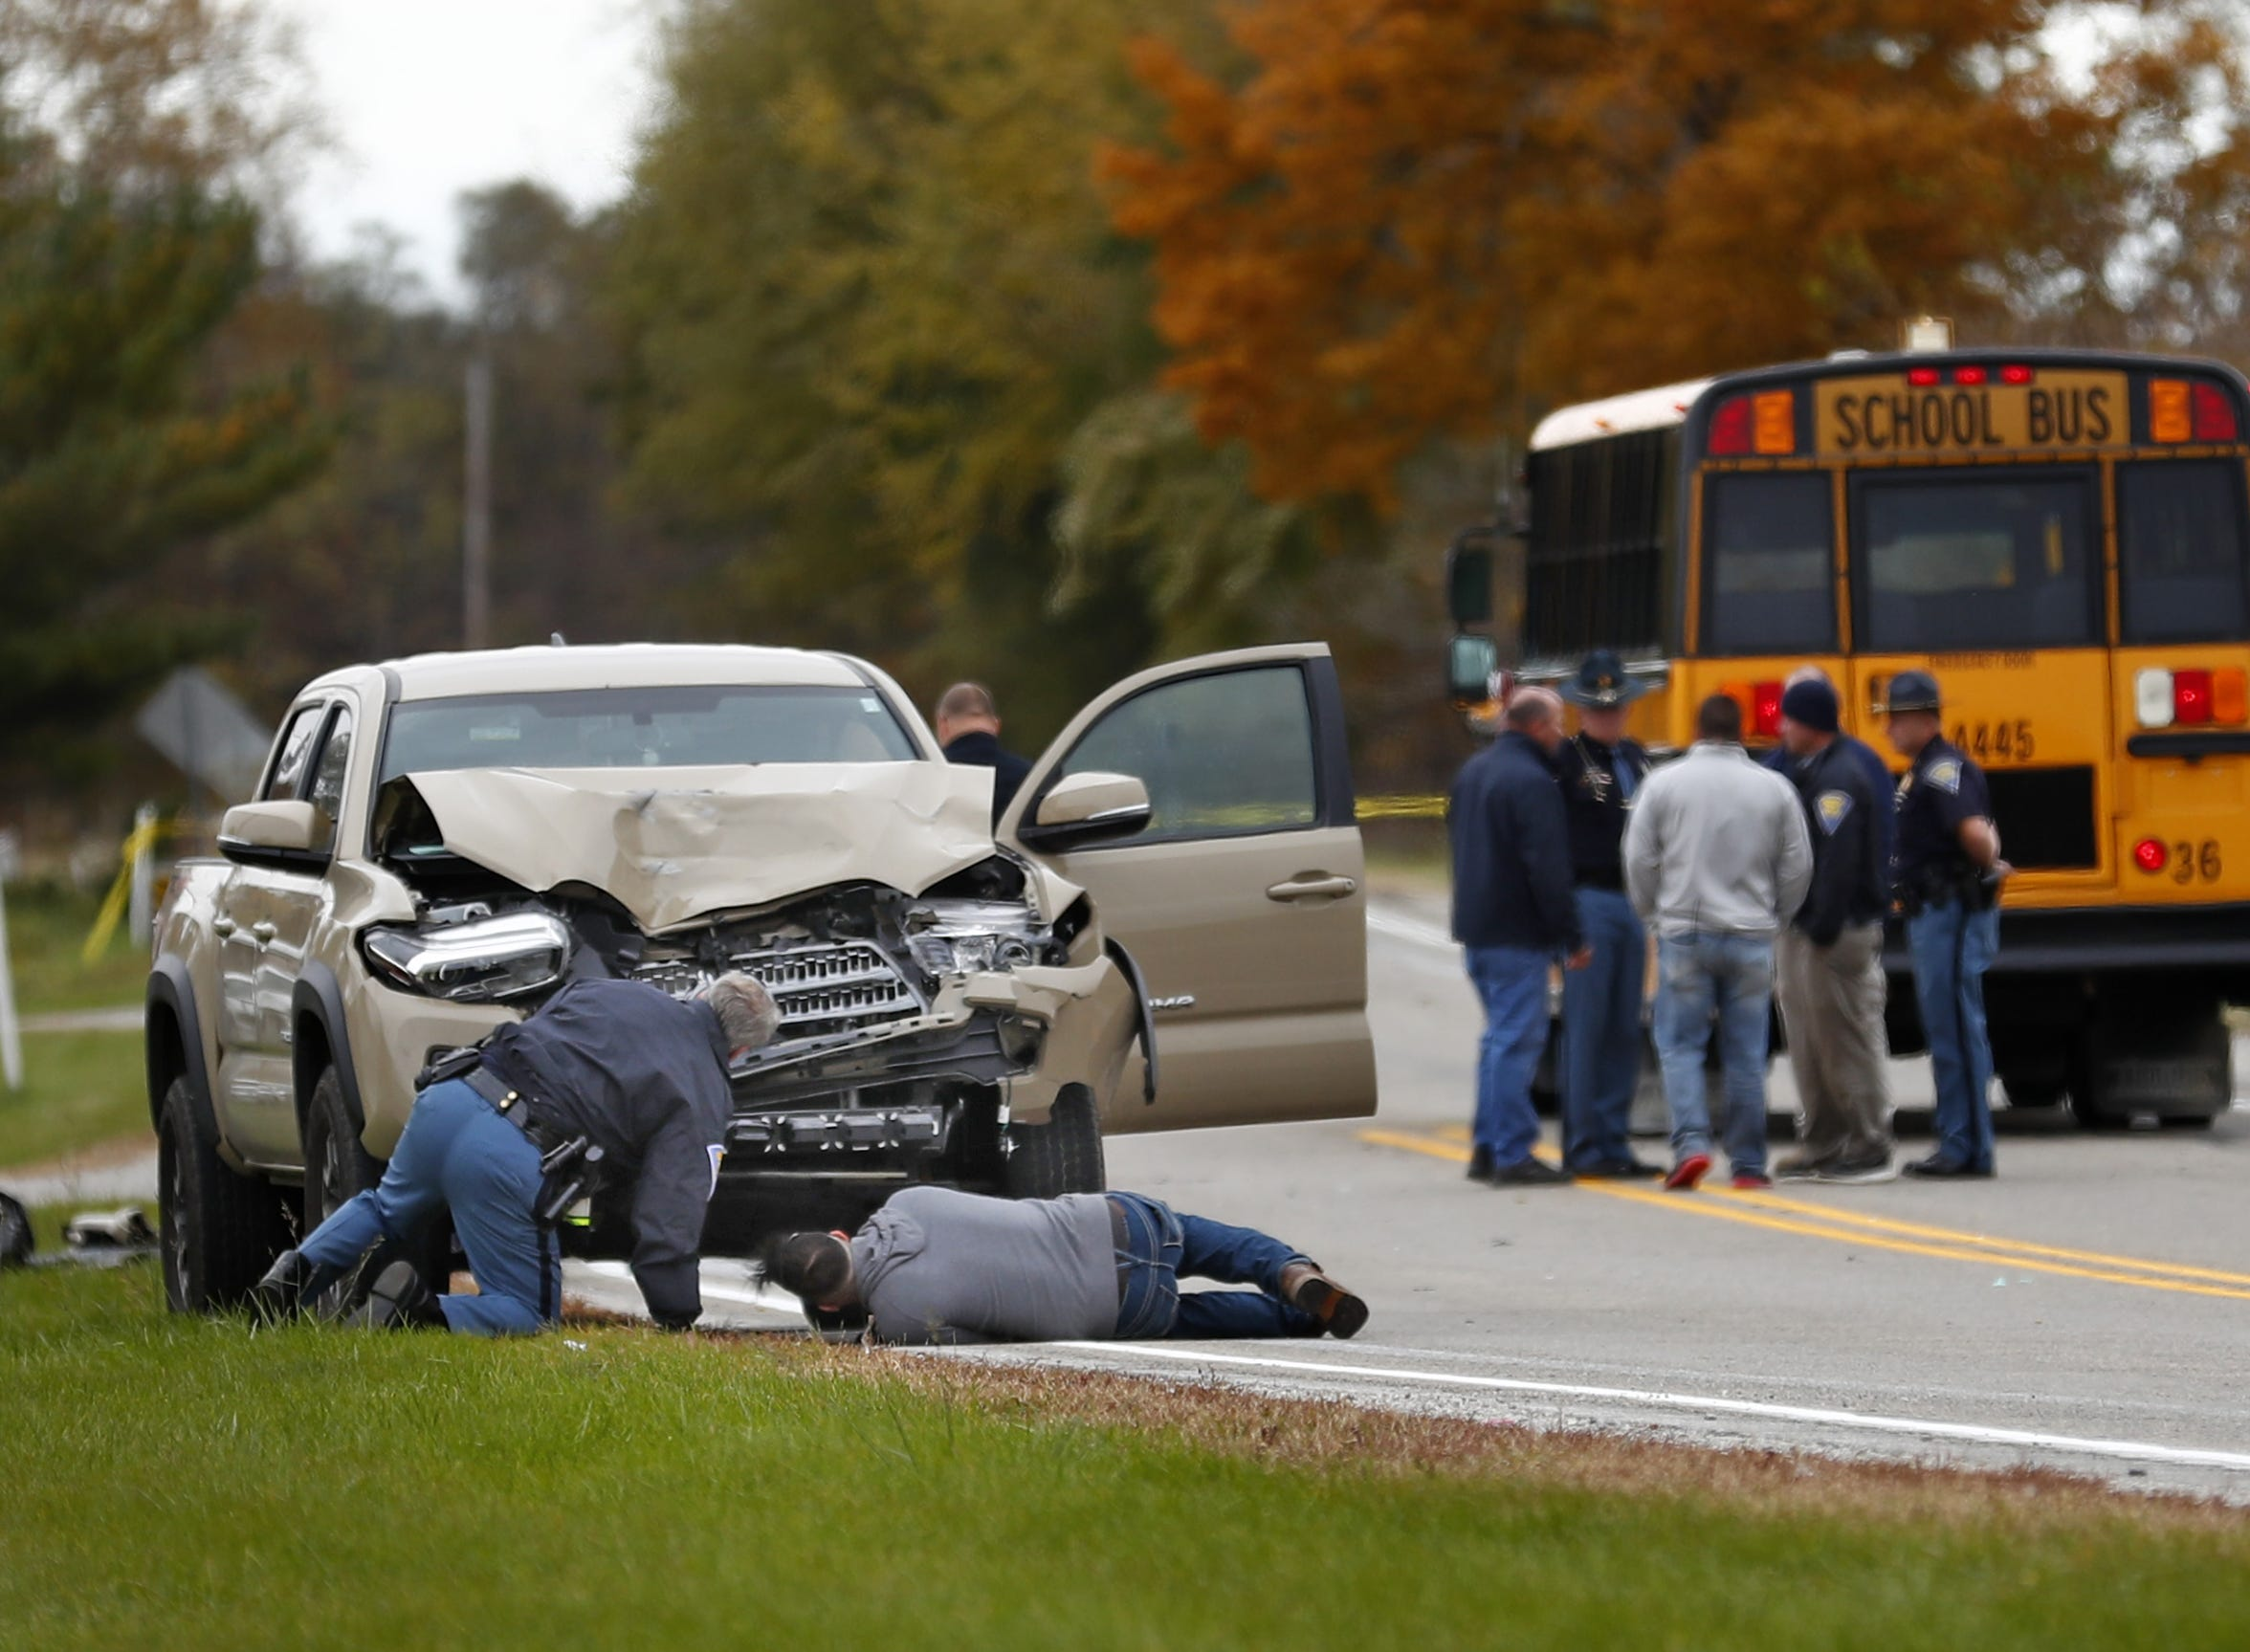 The scene near 4600 North IN State Rd. 25 north of Rochester, IN, where this pickup truck hit and killed three young children and critically injured a fourth as the children crossed the street to get on this school bus, right, Tuesday, Oct. 30, 2018.